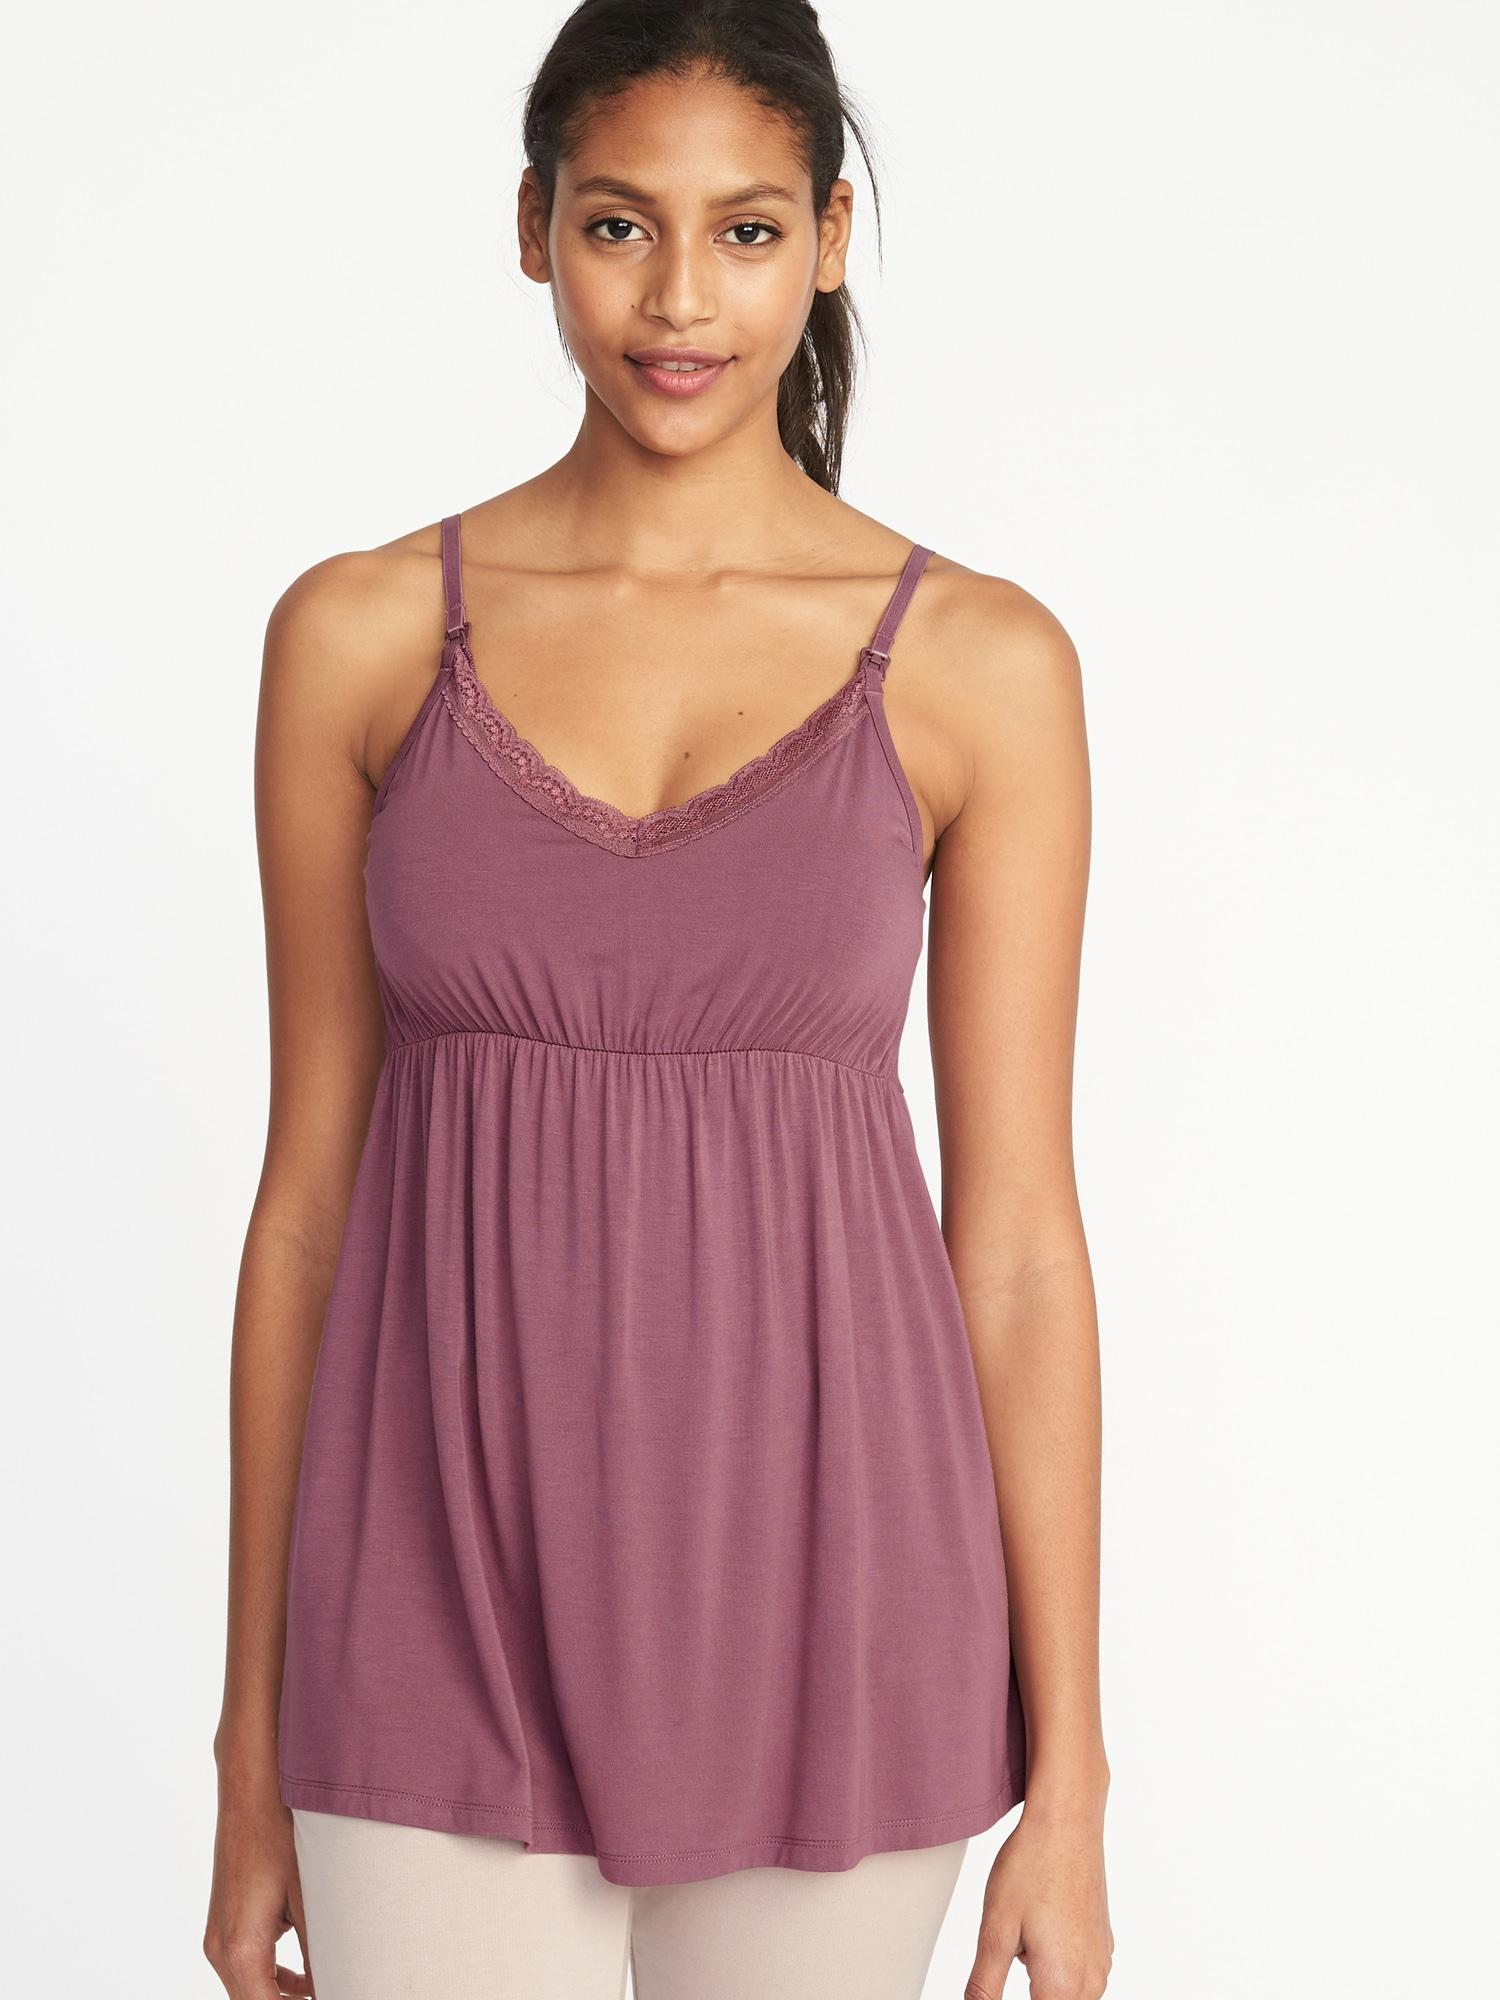 3016a4c626178 Lyst - Old Navy Maternity Lace-trim Nursing Cami in Purple